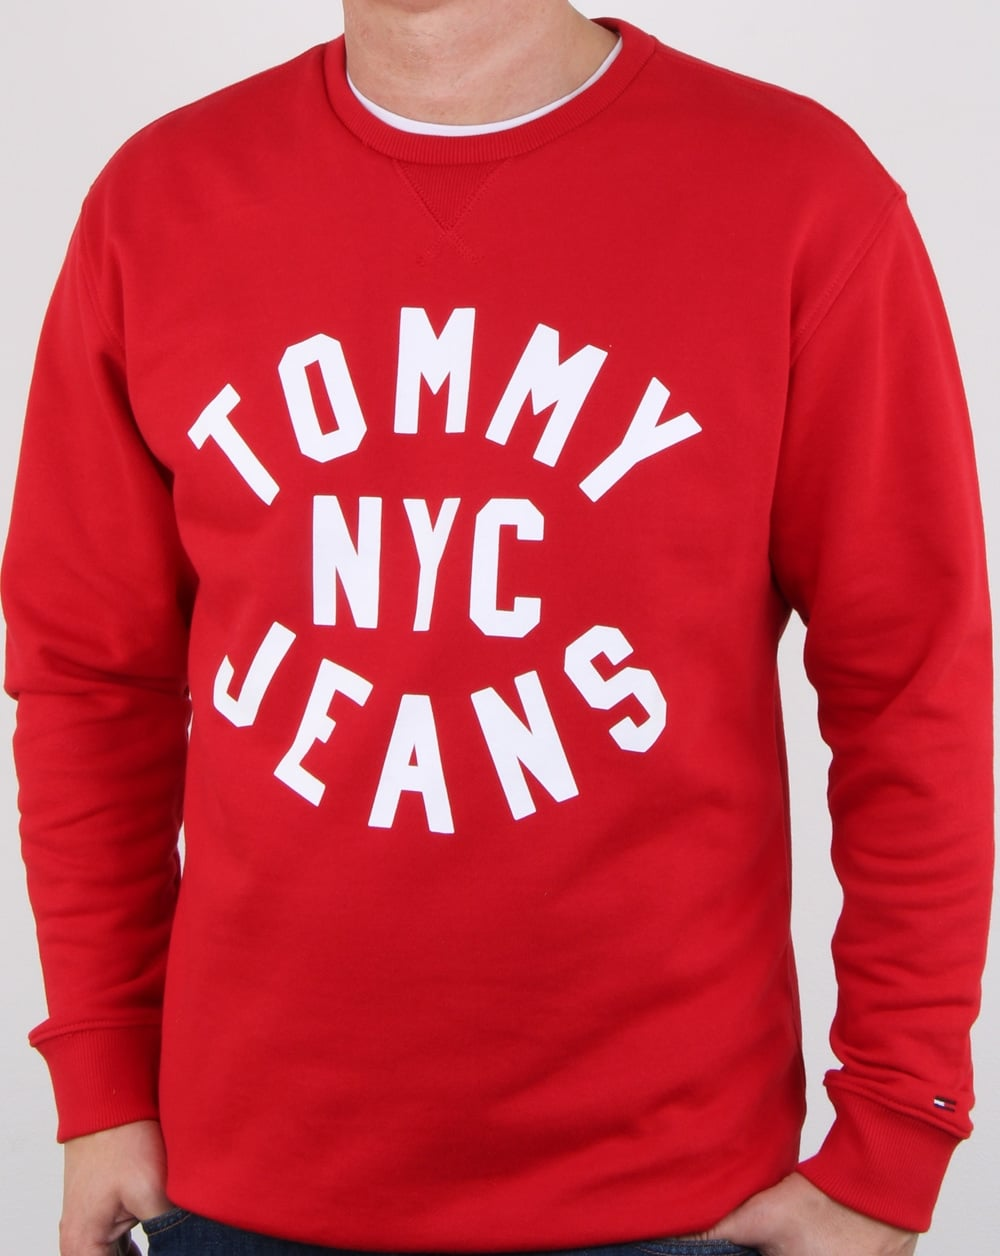 d4e83352 Tommy Hilfiger Nyc Logo Sweatshirt Racing Red, Mens, Sweatshirt, Crew